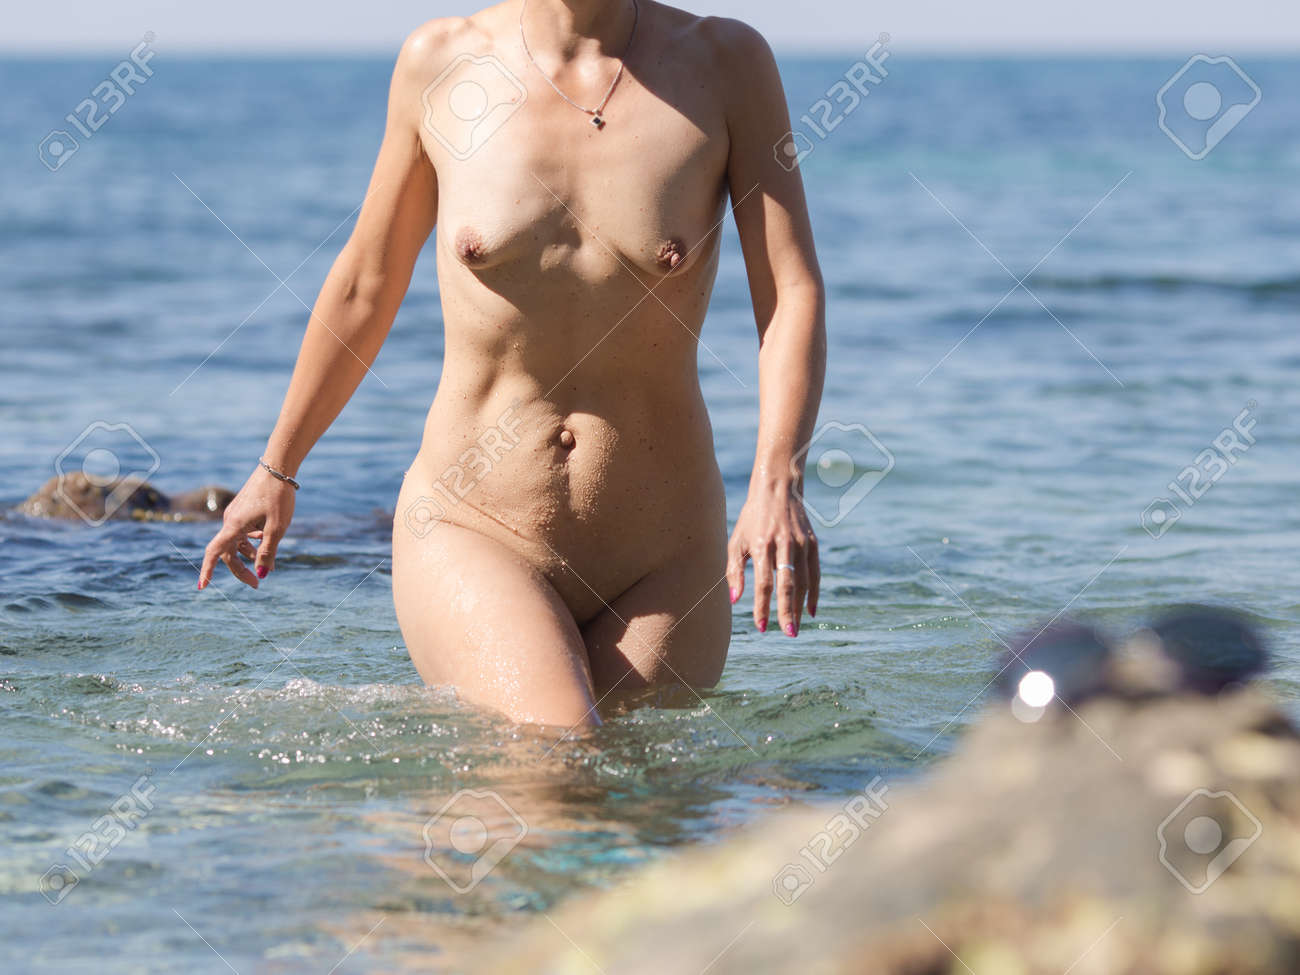 Girl coming out of water naked